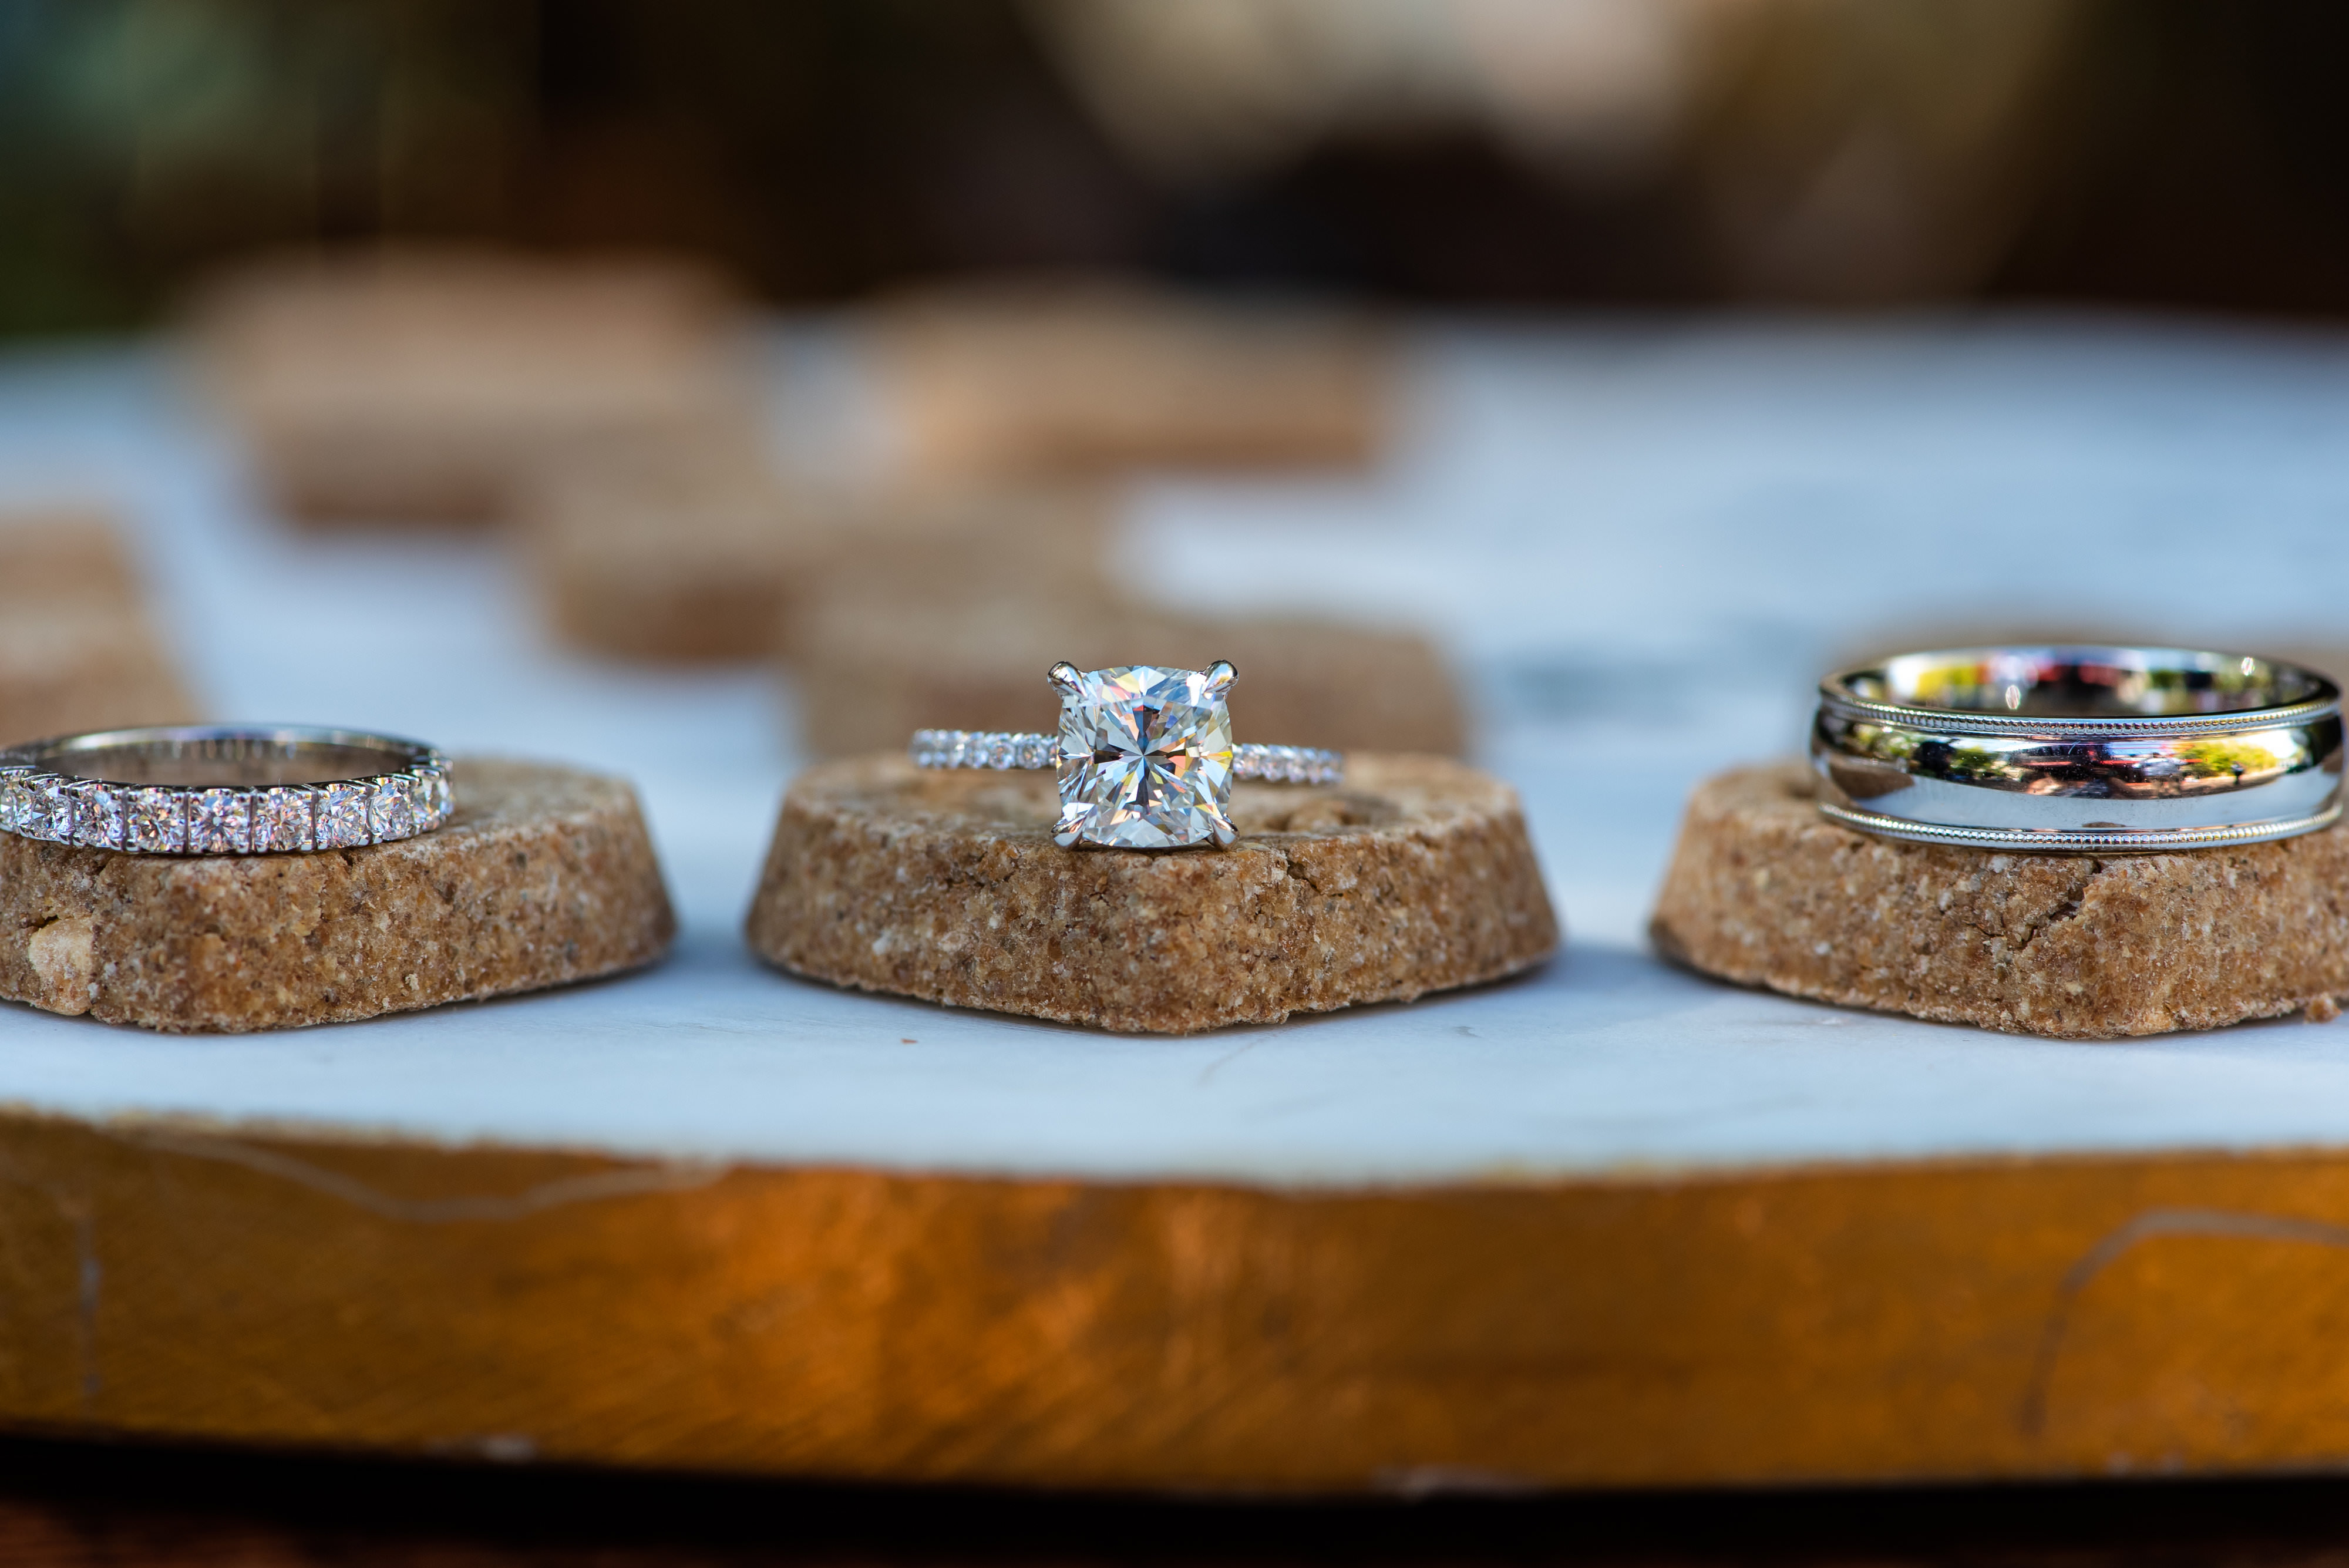 Cushion Cut Diamond Engagement Ring and Diamond Band, Bride and Groom Wedding Rings on Dog Biscuits | Tampa Bay Wedding Photographer Caroline and Evan Photography|